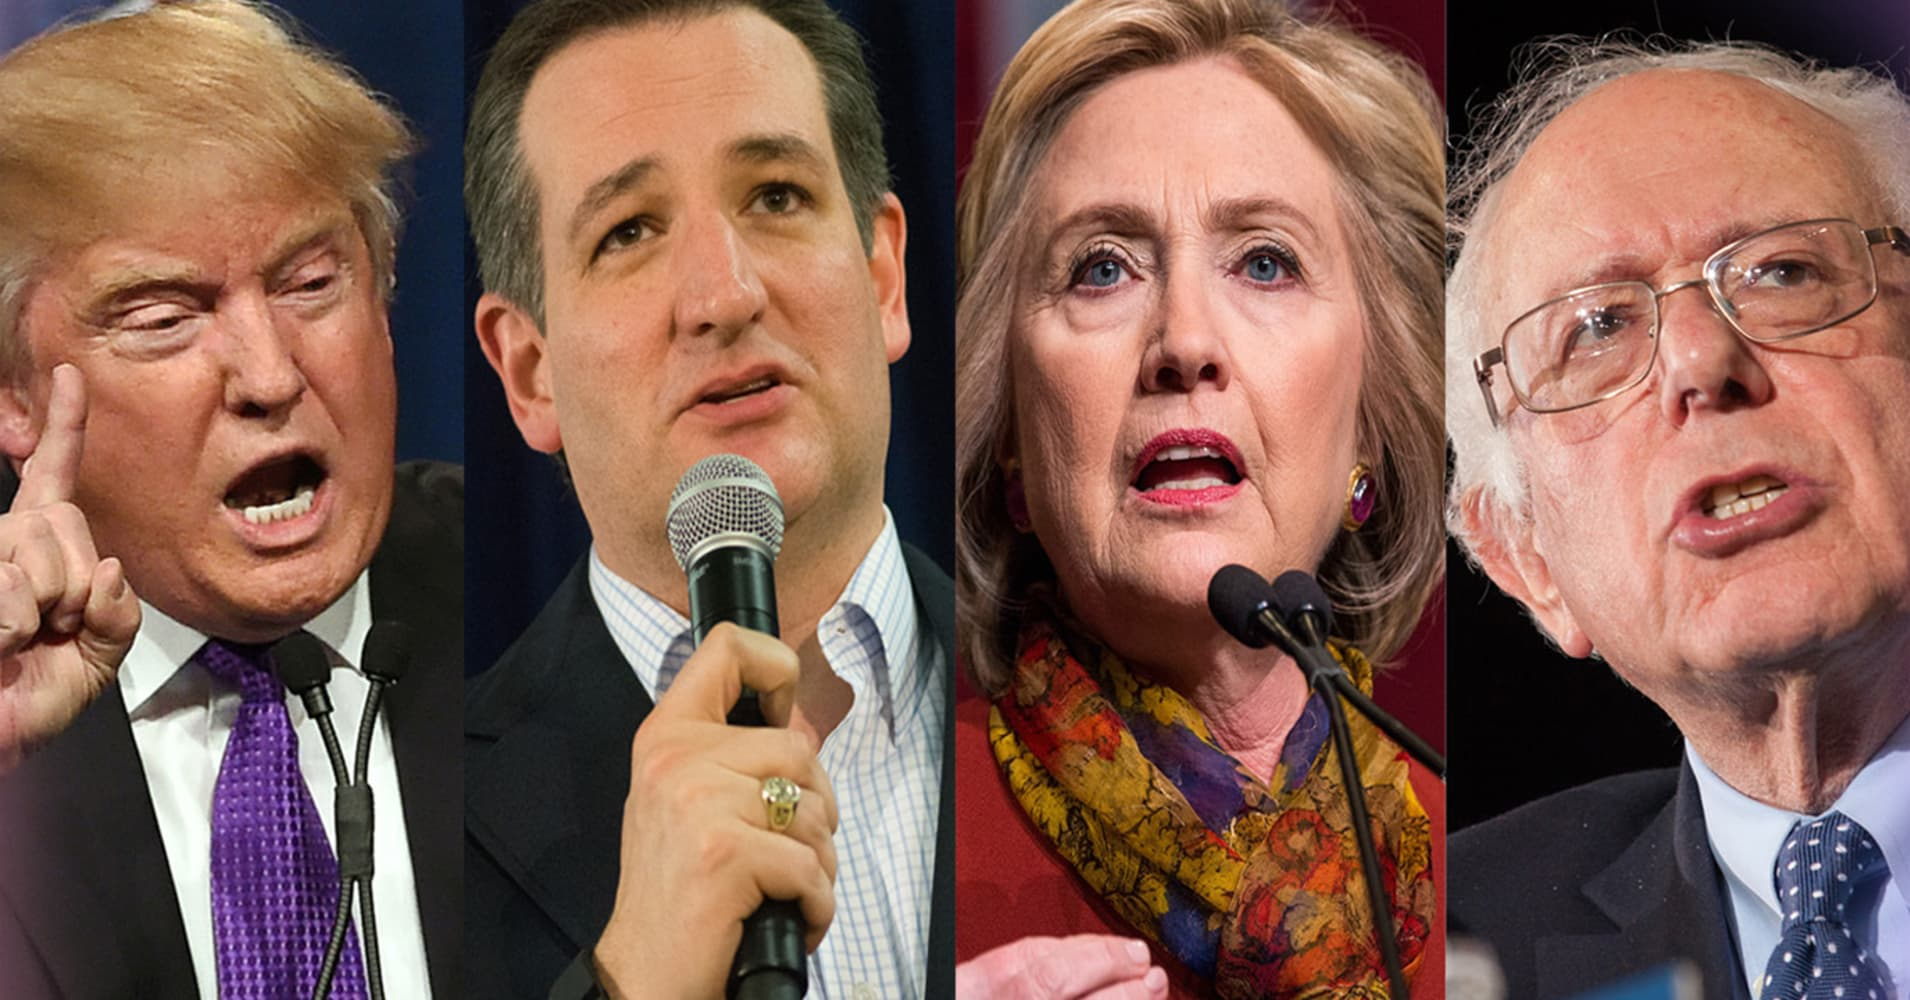 Donald Trump, Ted Cruz, Hillary Clinton and Bernie Sanders